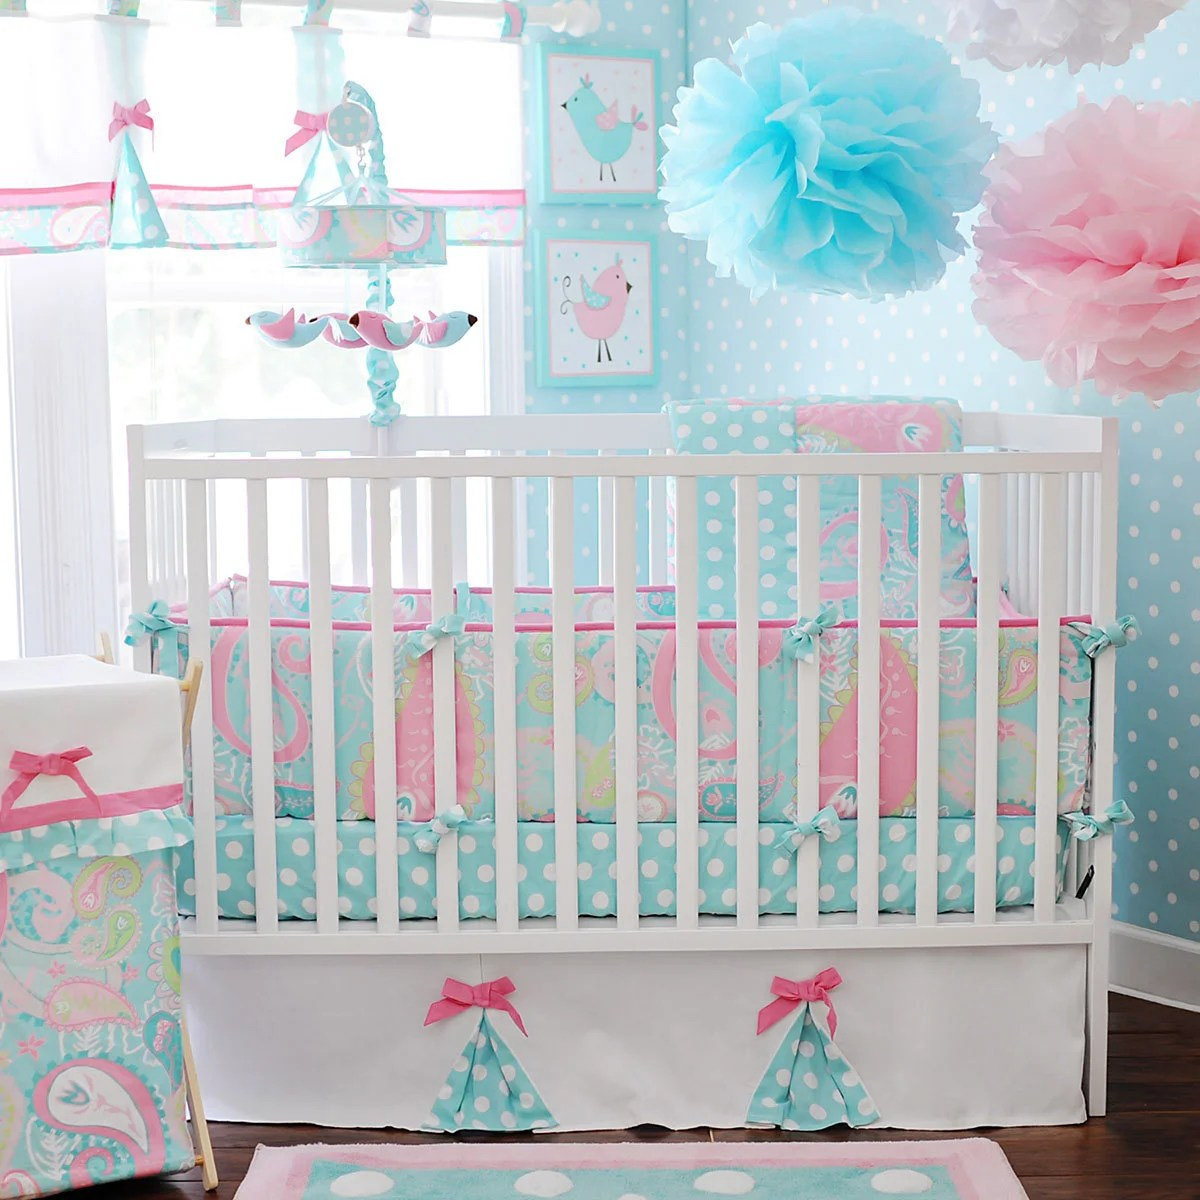 Full Crib Bedding Sets My Baby Sam Pixie Baby In Aqua 3 Piece Crib Bedding Set